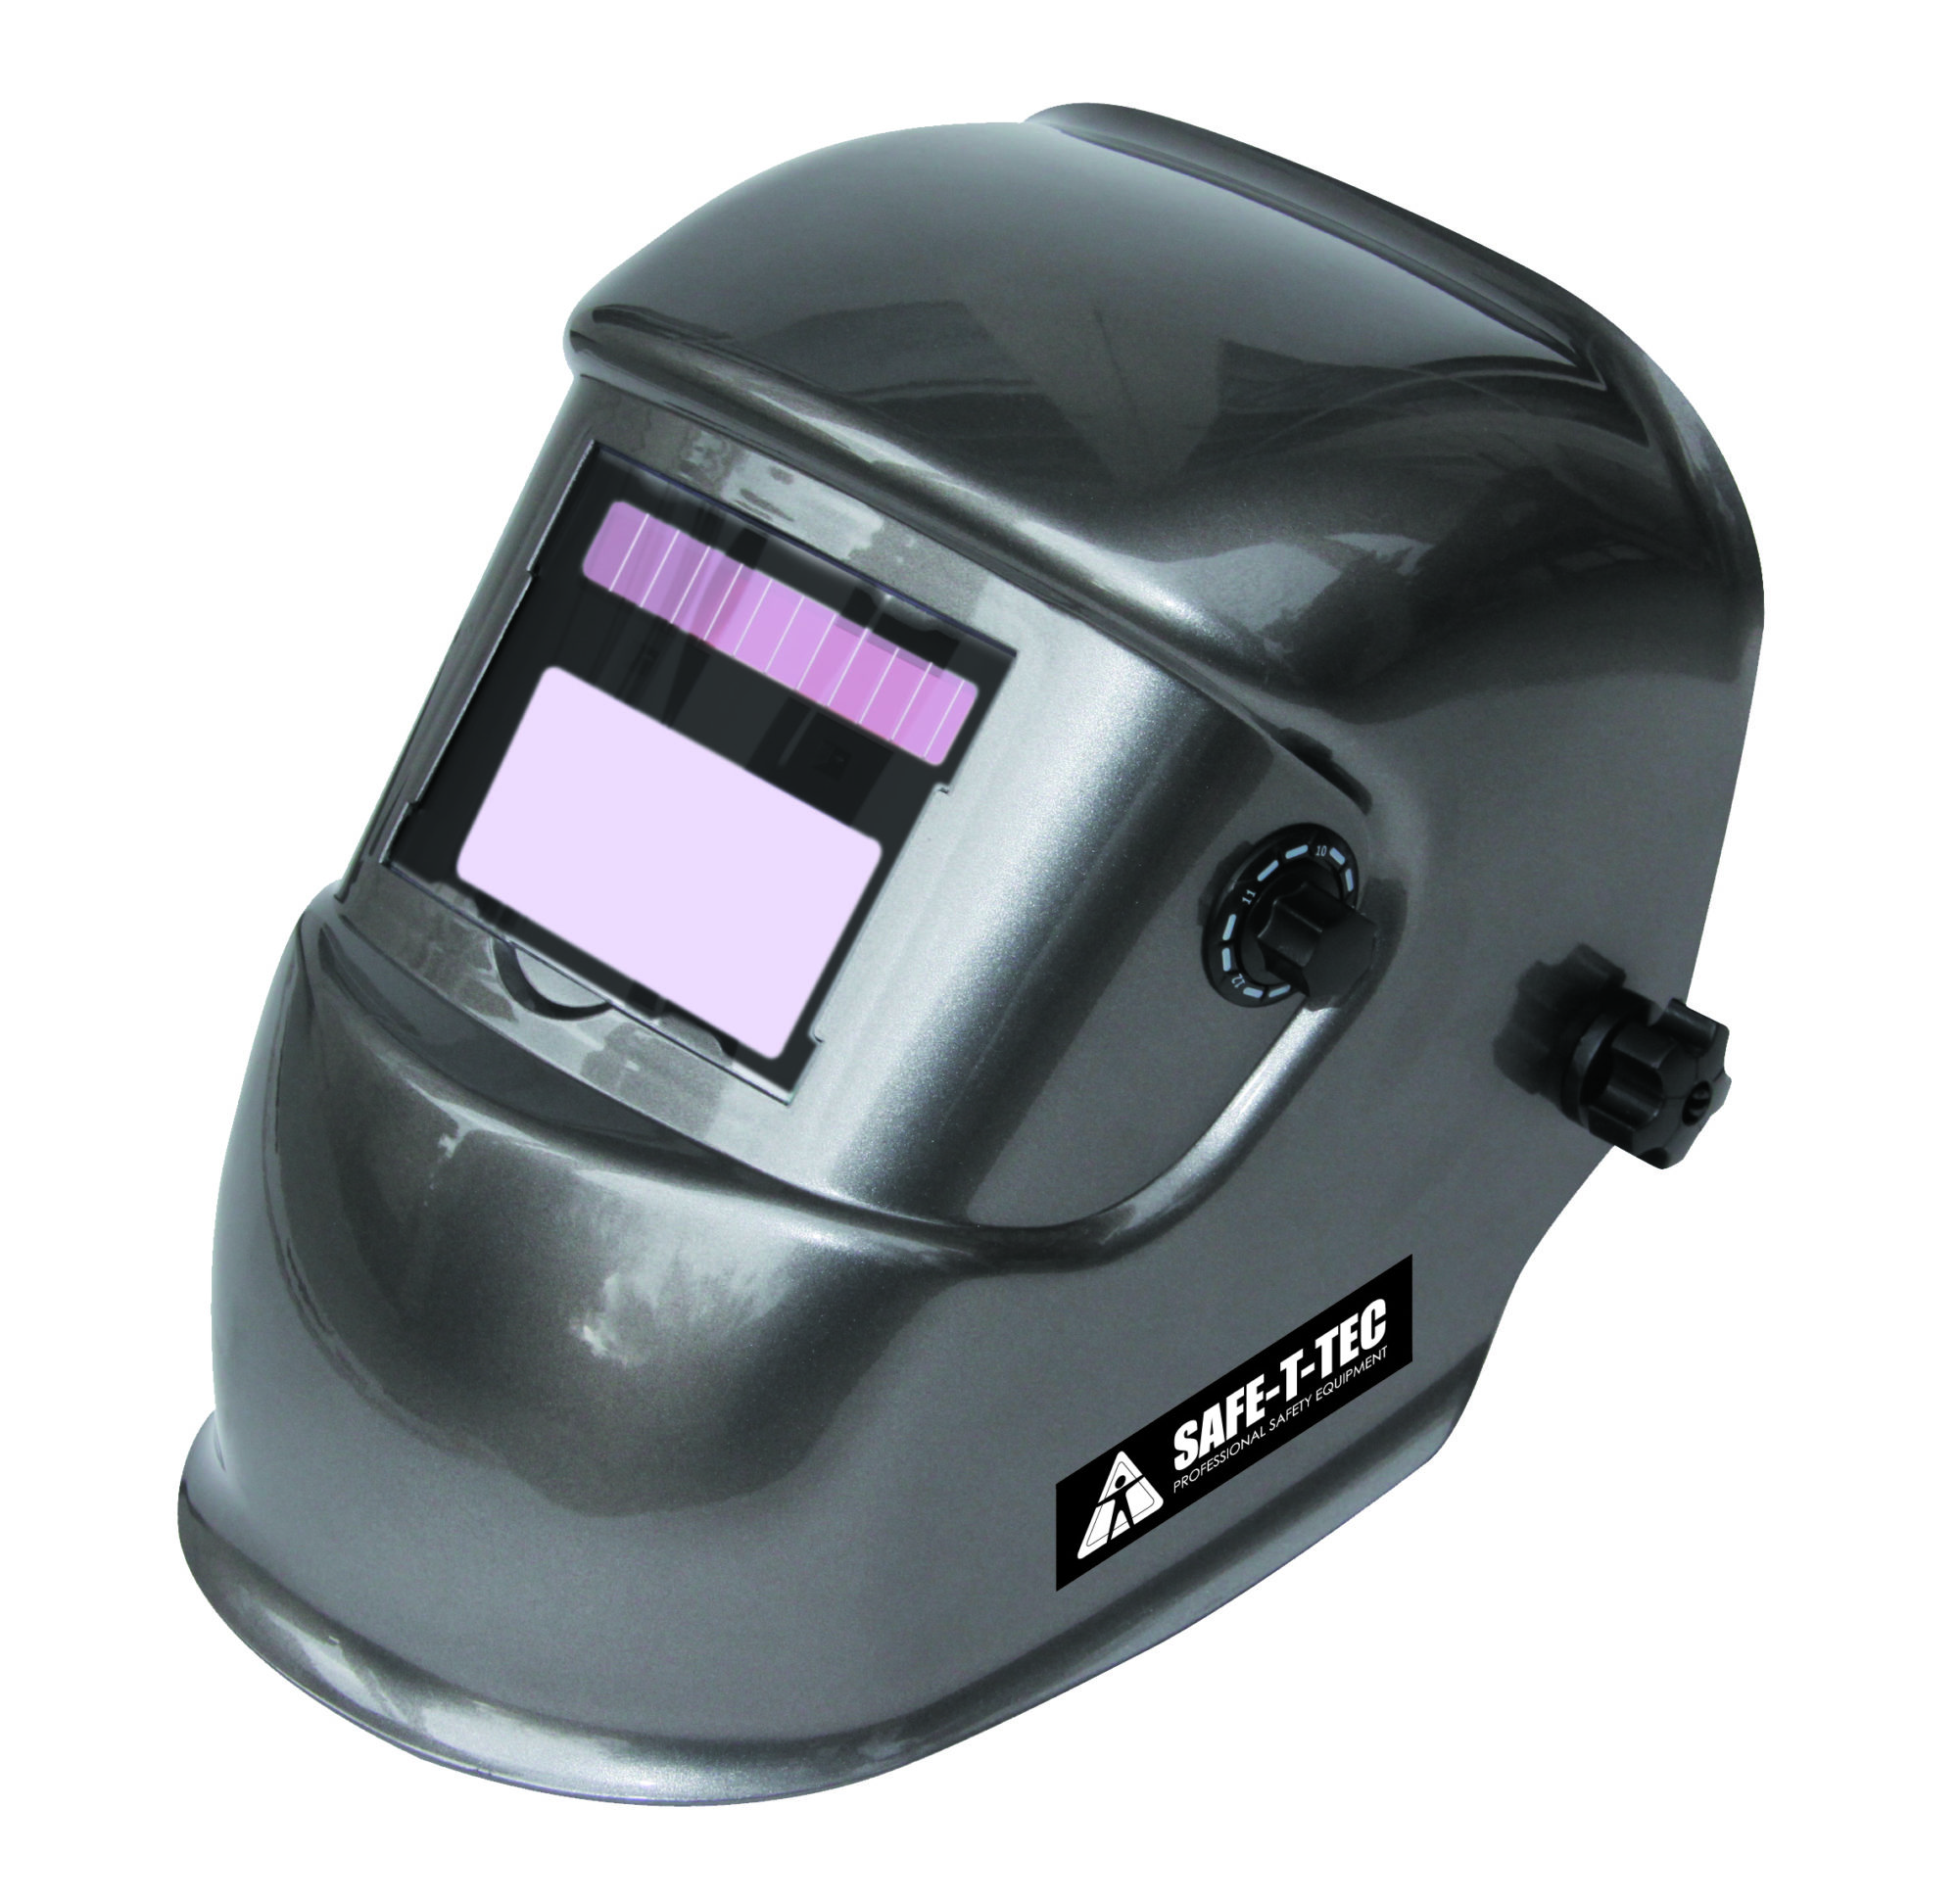 Safe-T-Tec: Auto Darking Welding Helmet